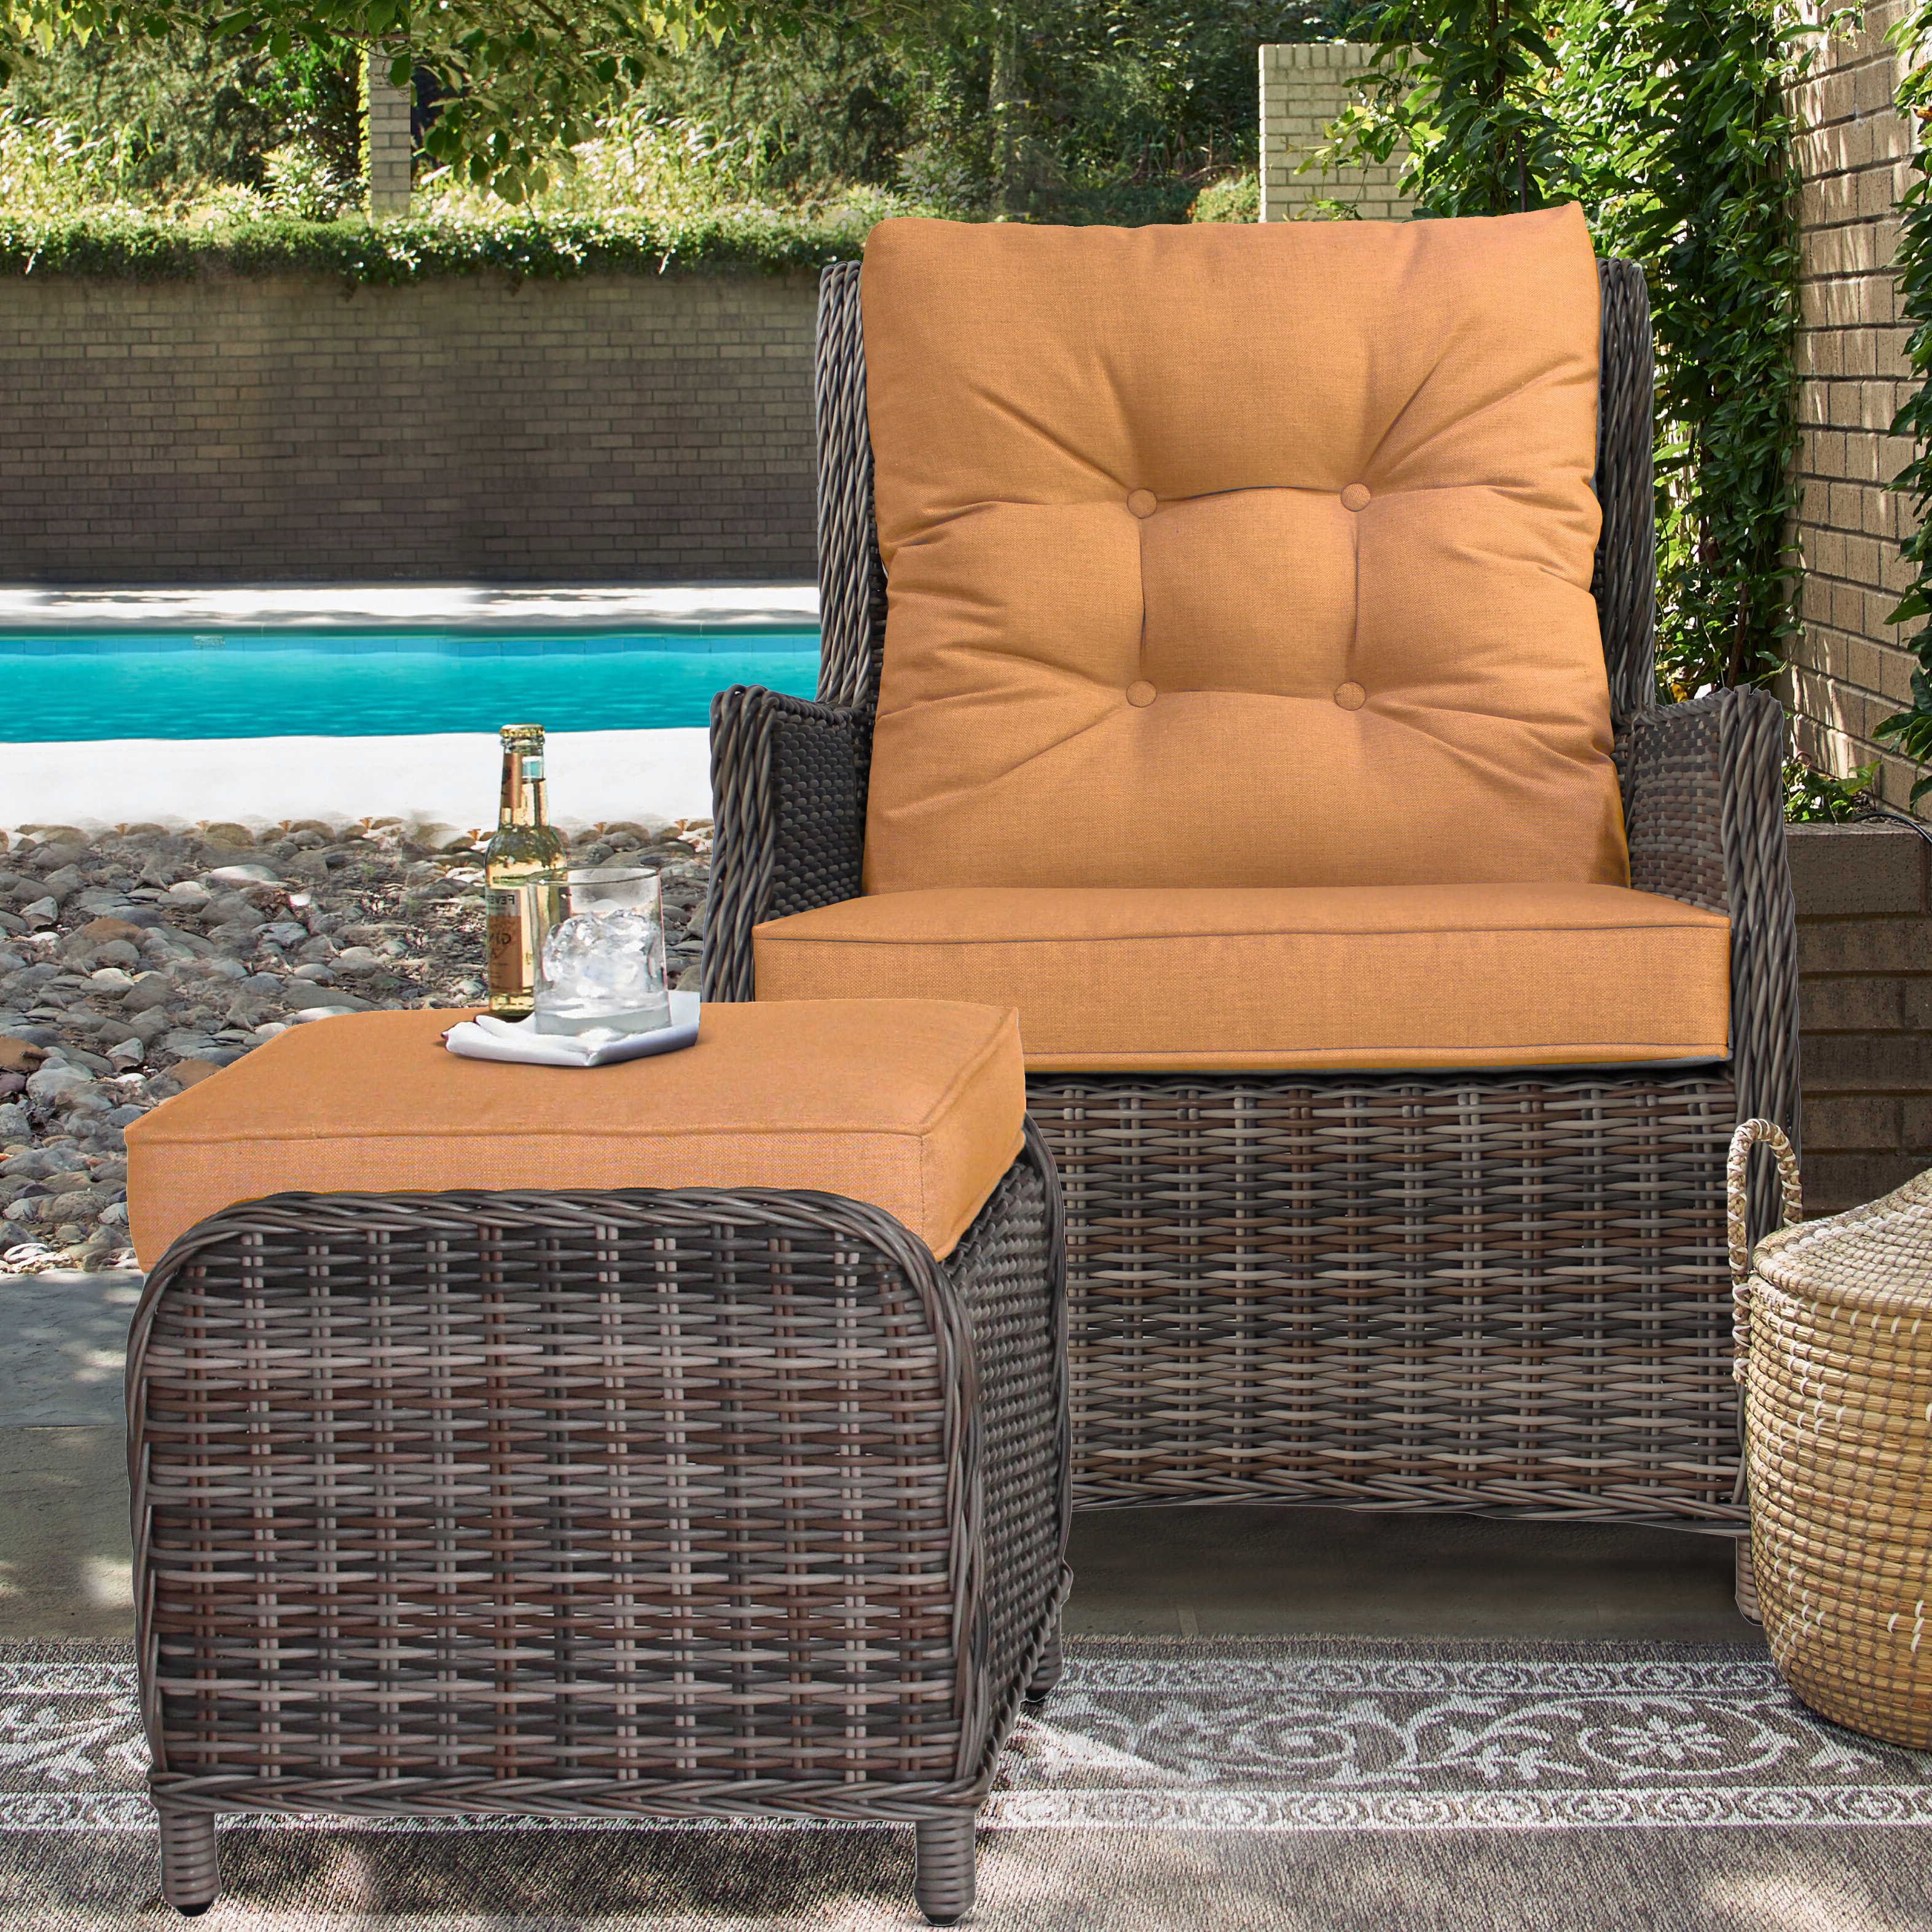 Cardoza Outdoor Recliner Patio Chair With Cushions And Ottoman For Latest Outdoor Adjustable Rattan Wicker Recliner Chairs With Cushion (View 18 of 25)